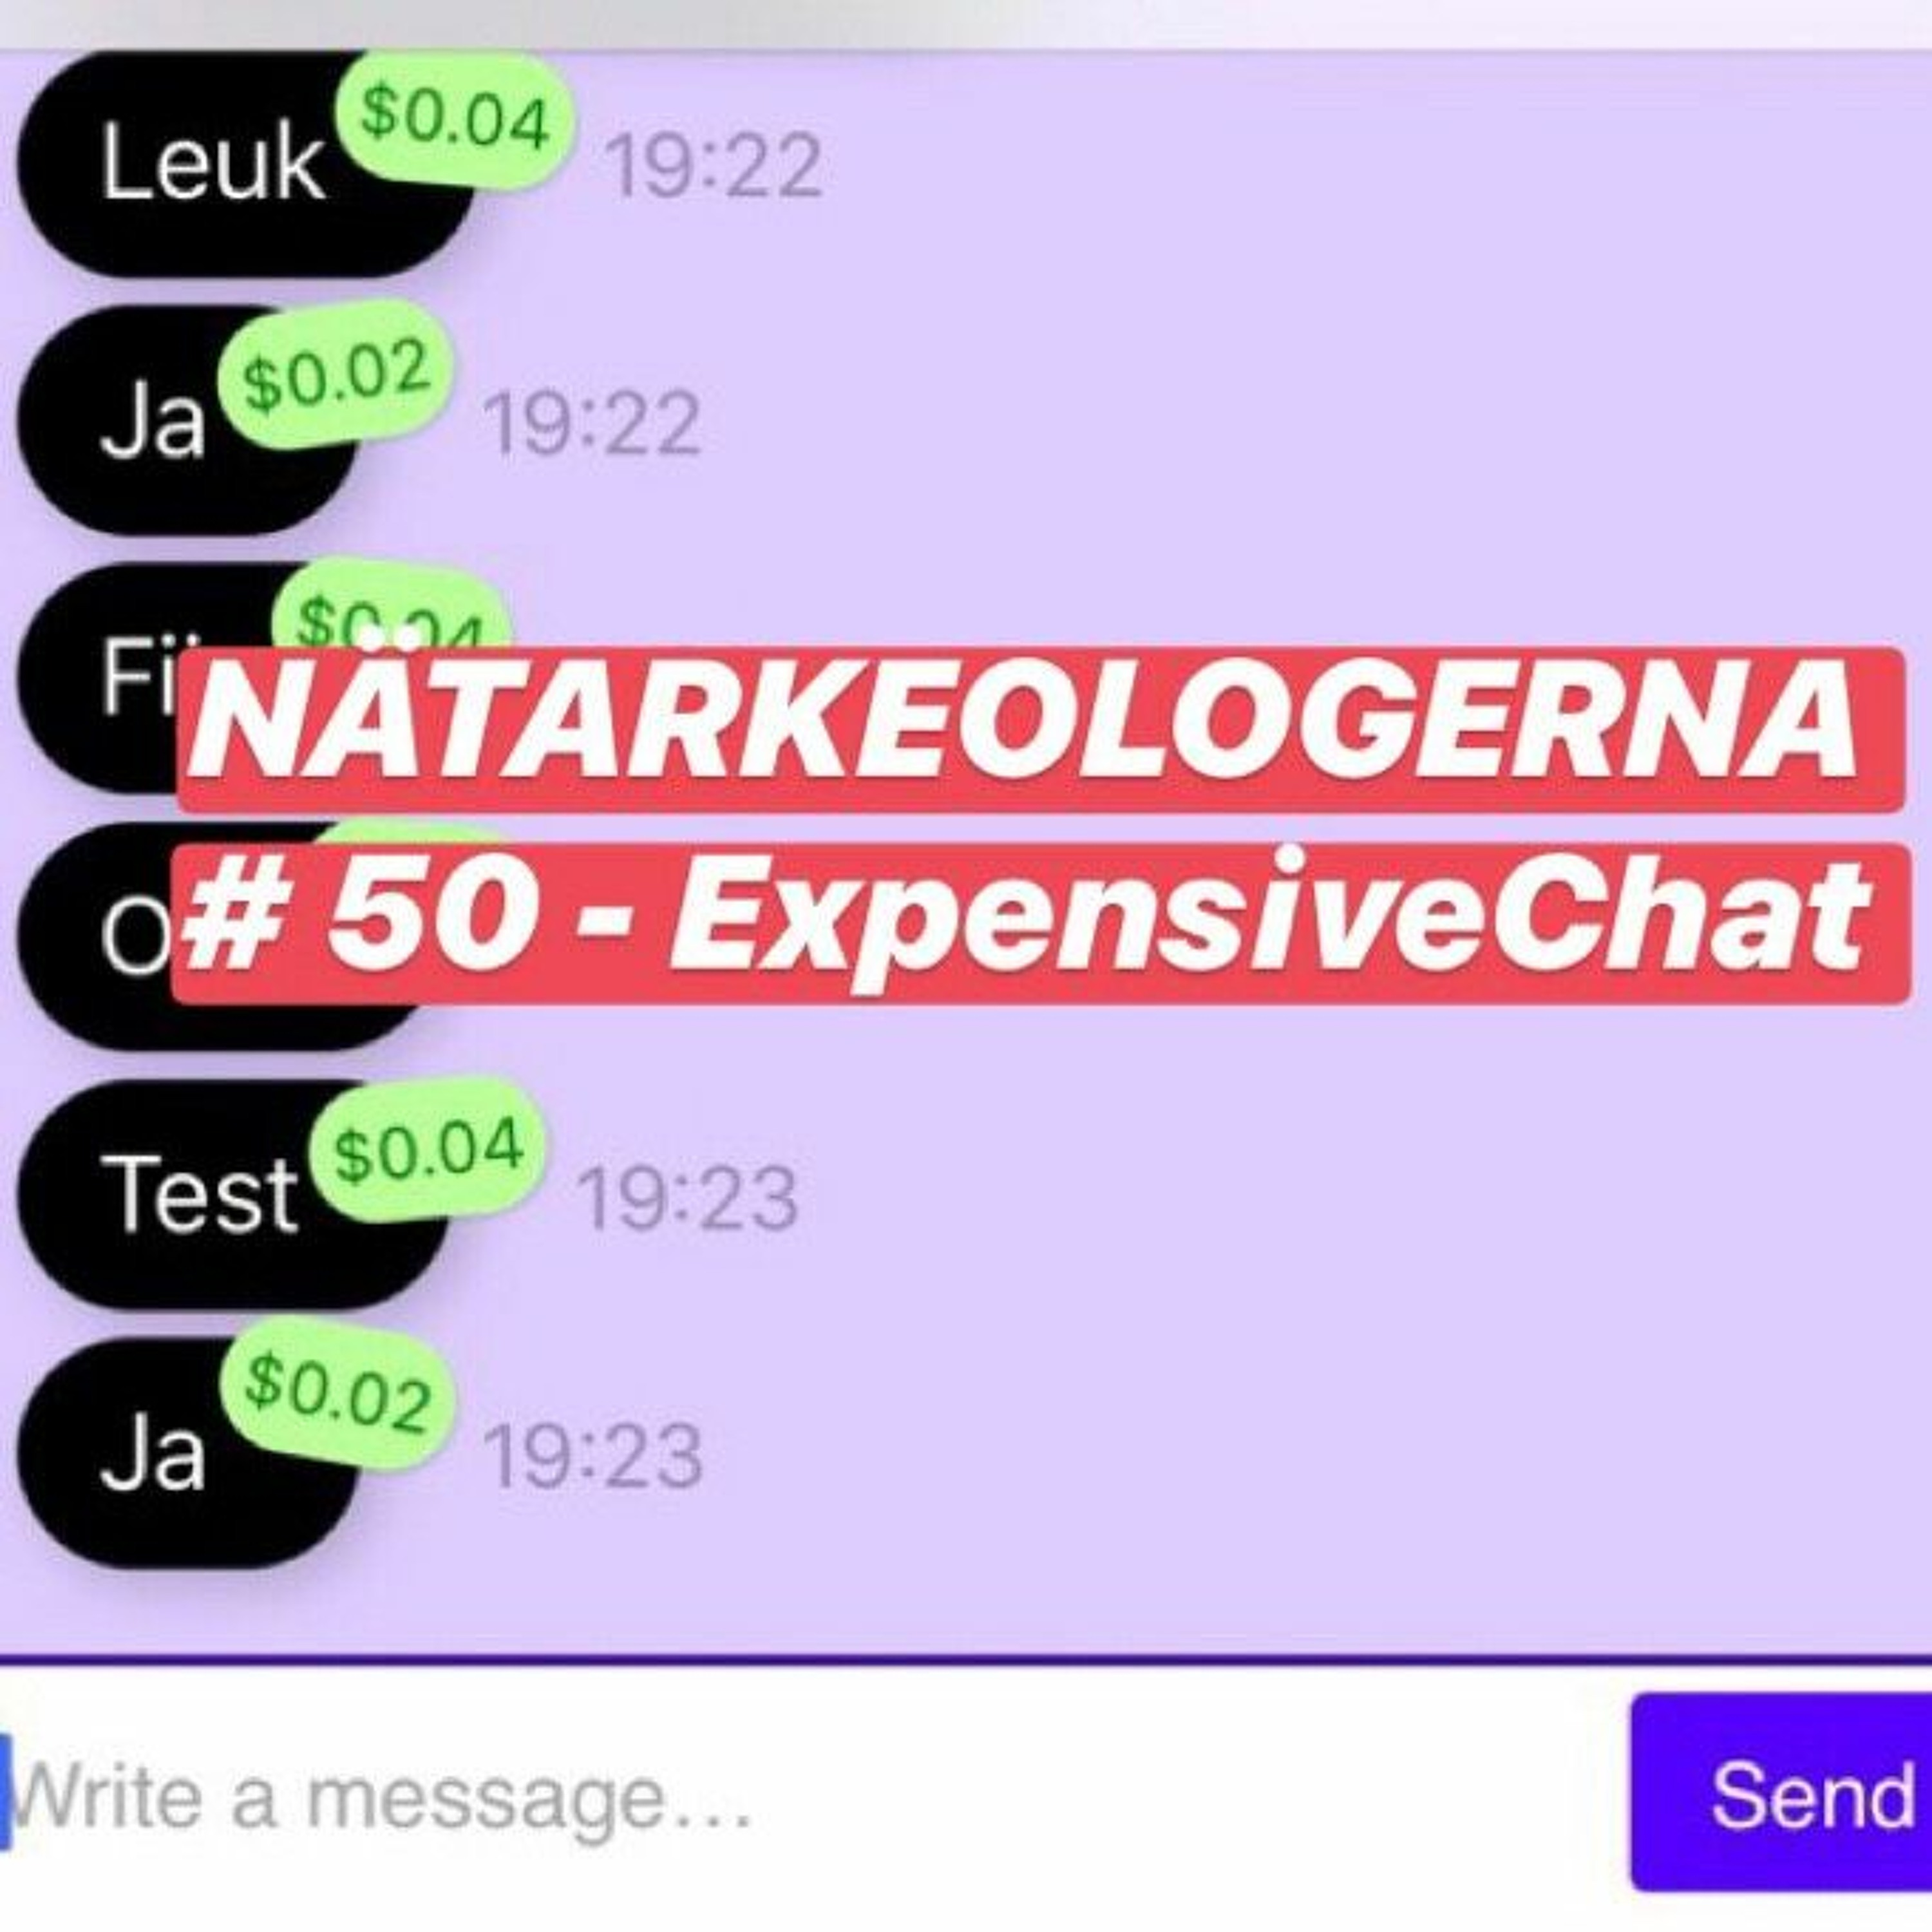 #50 - ExpensiveChat